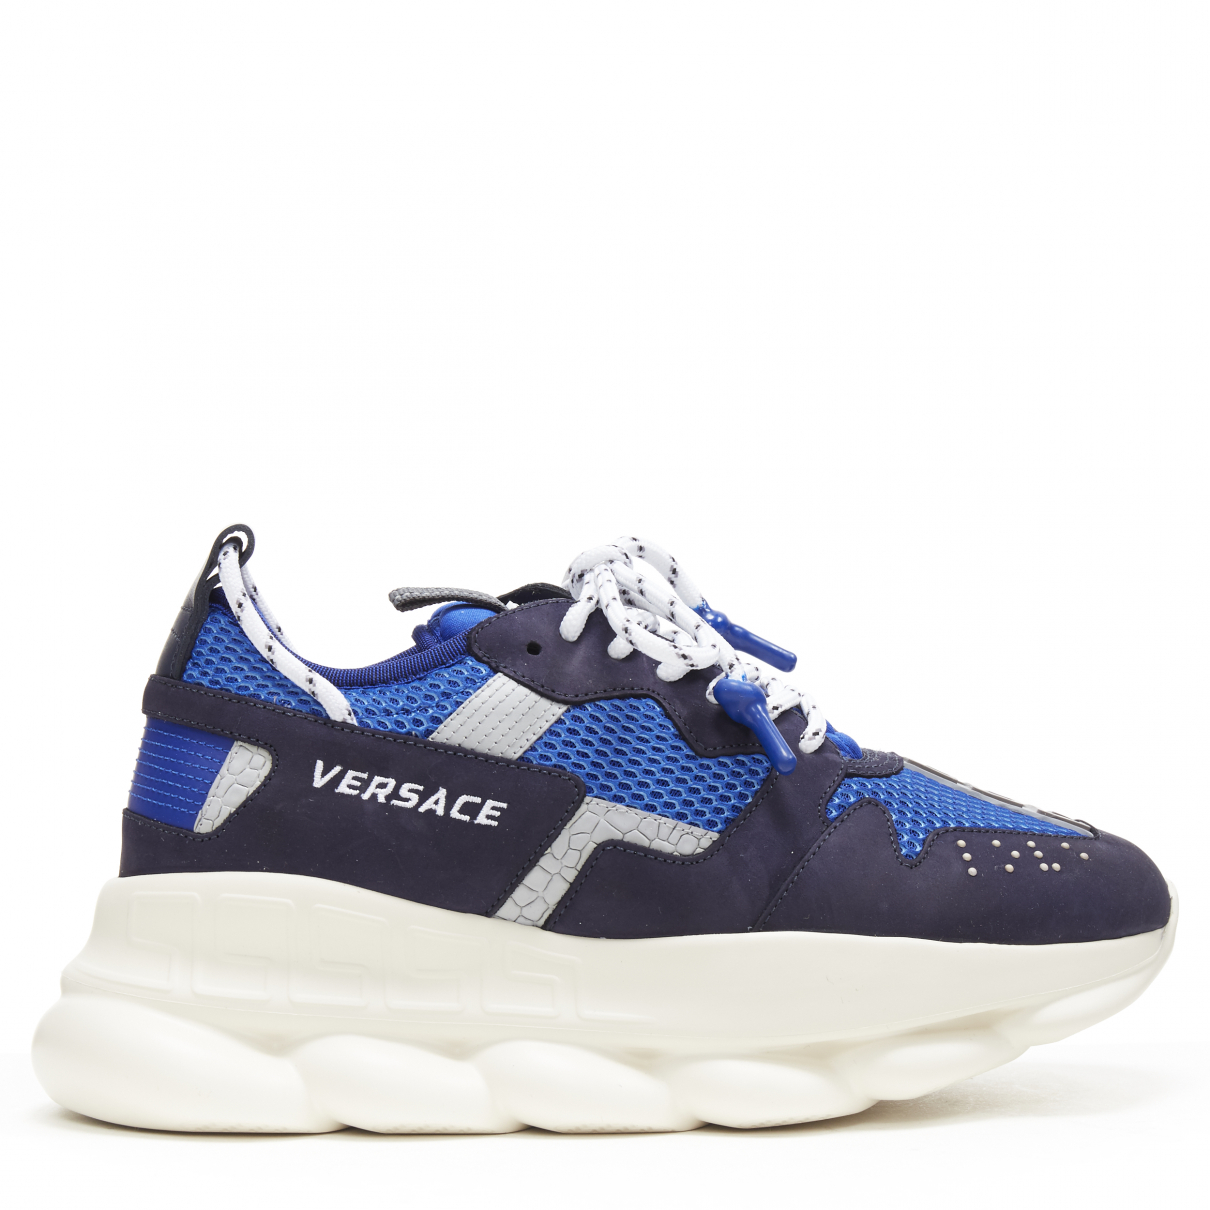 Versace Chain Reaction Blue Leather Trainers for Men 42 EU